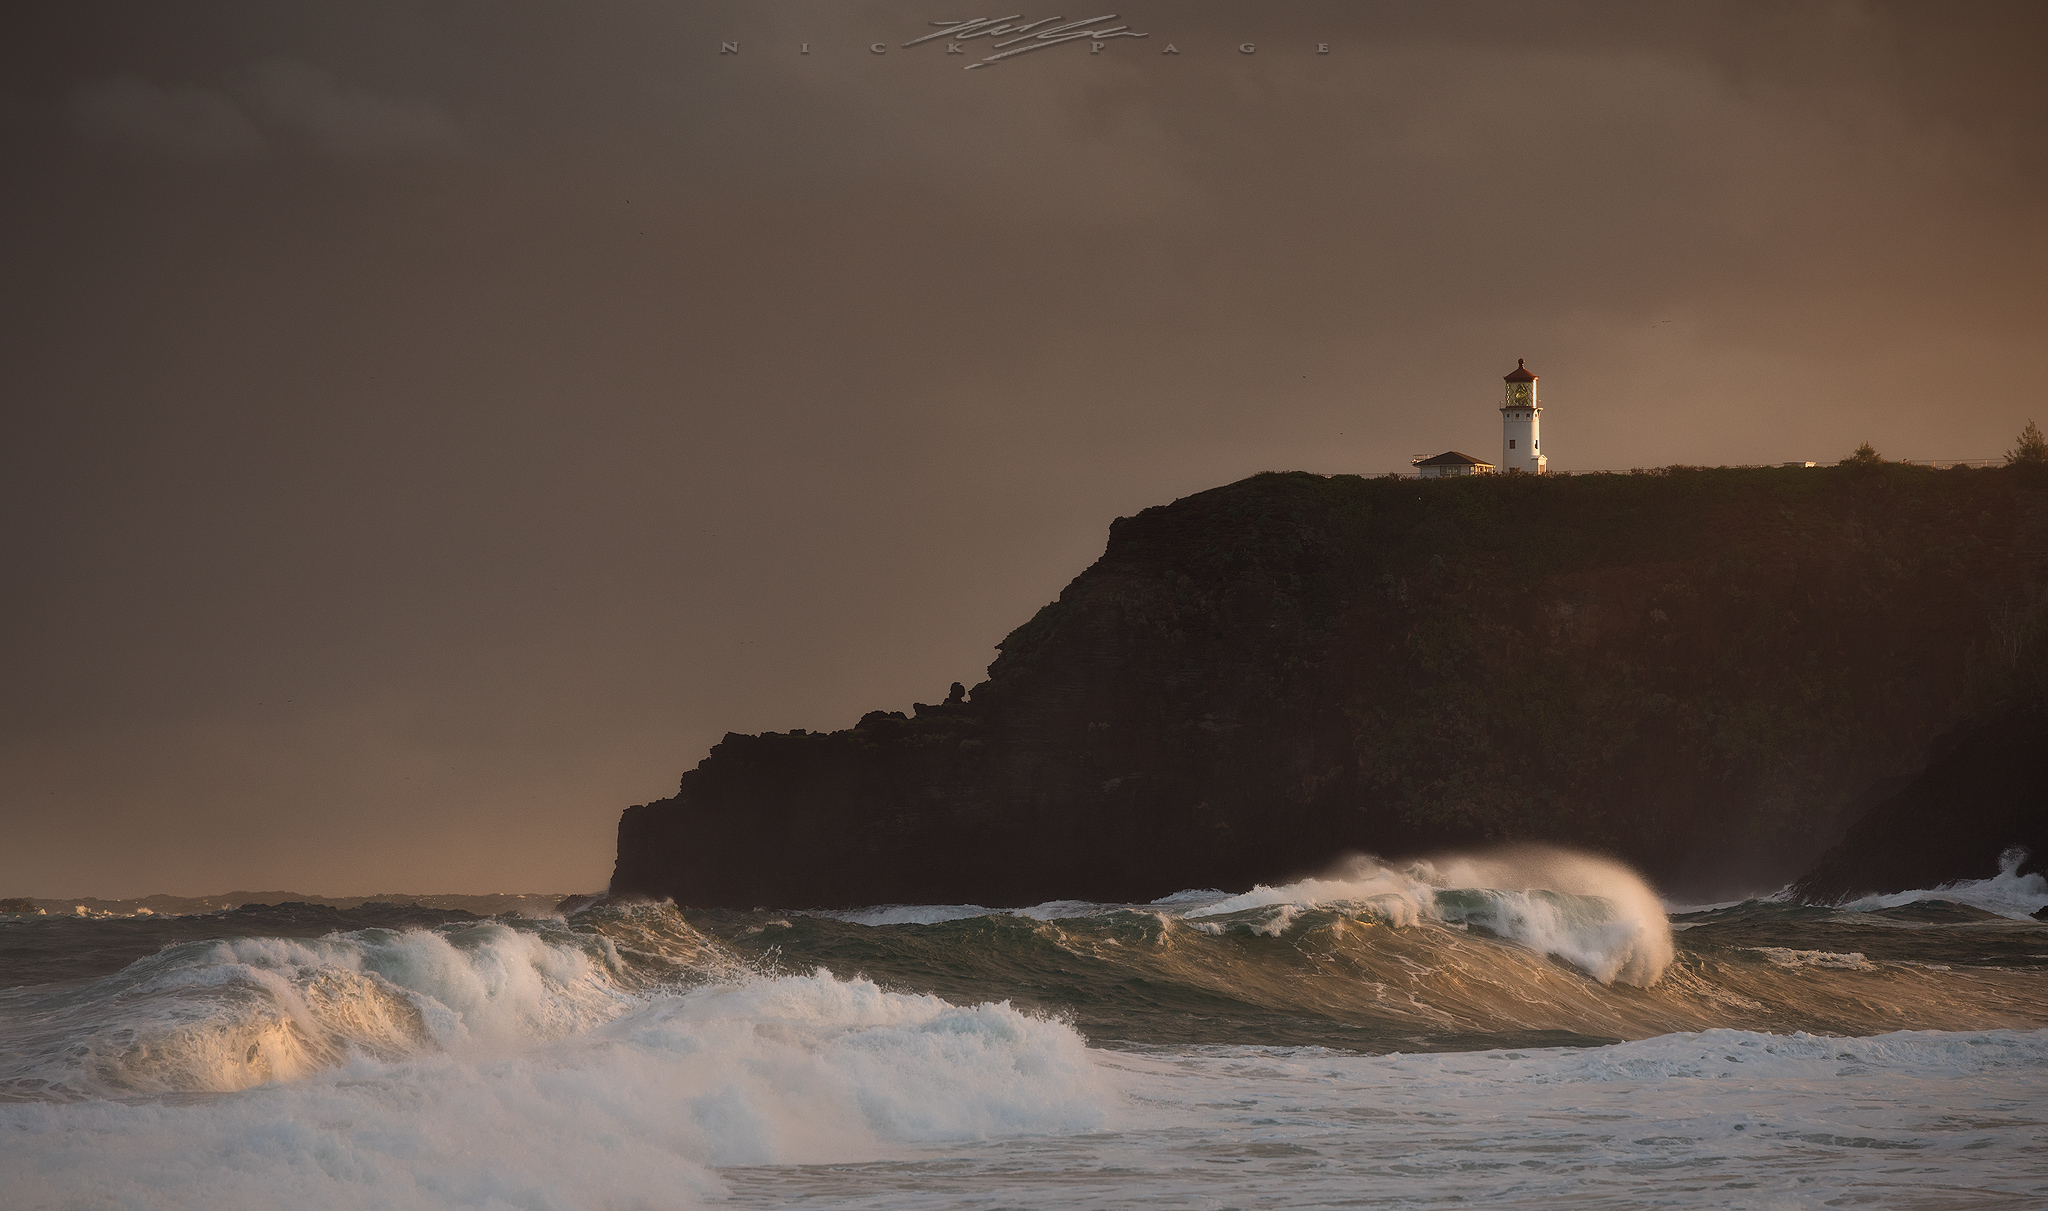 lighthouse-surf.jpg